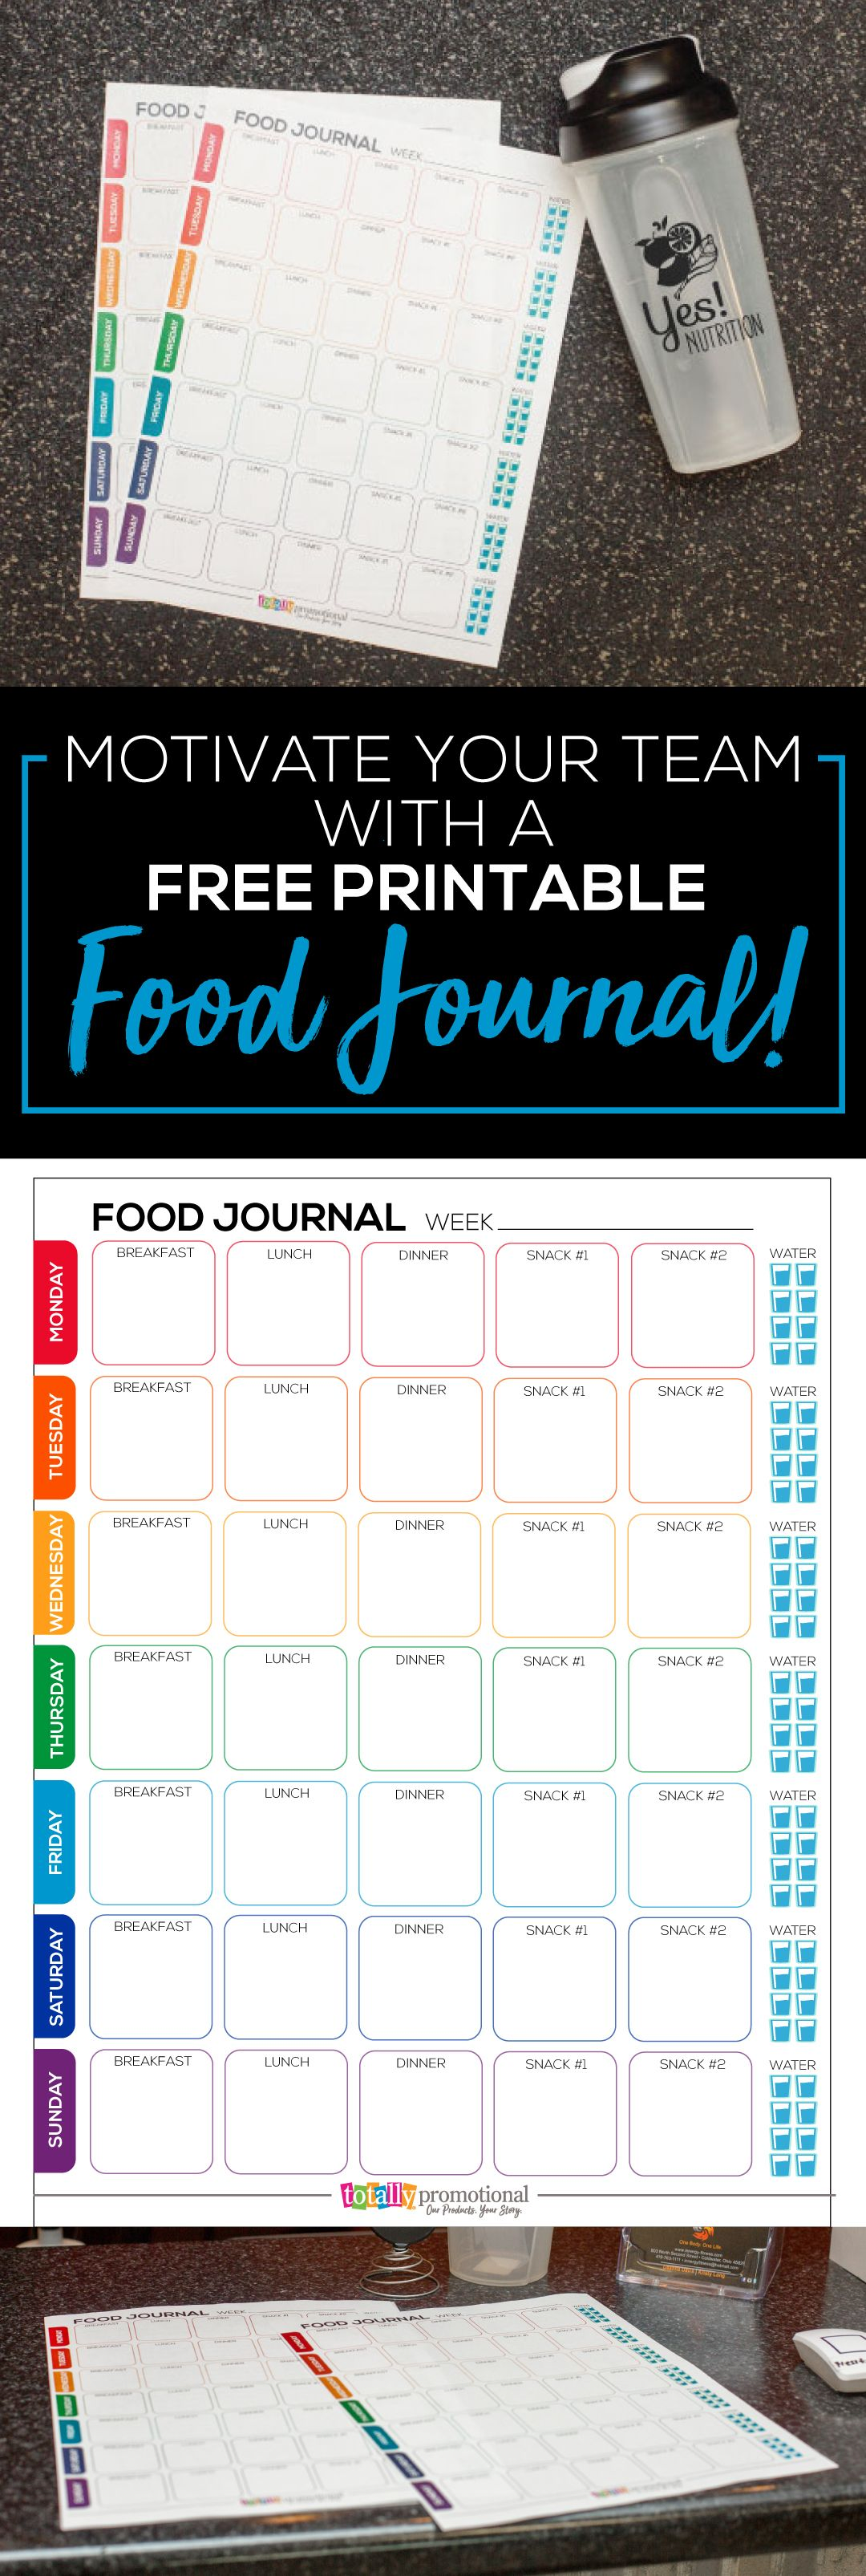 free printable food journal motivate your fitness group daniel